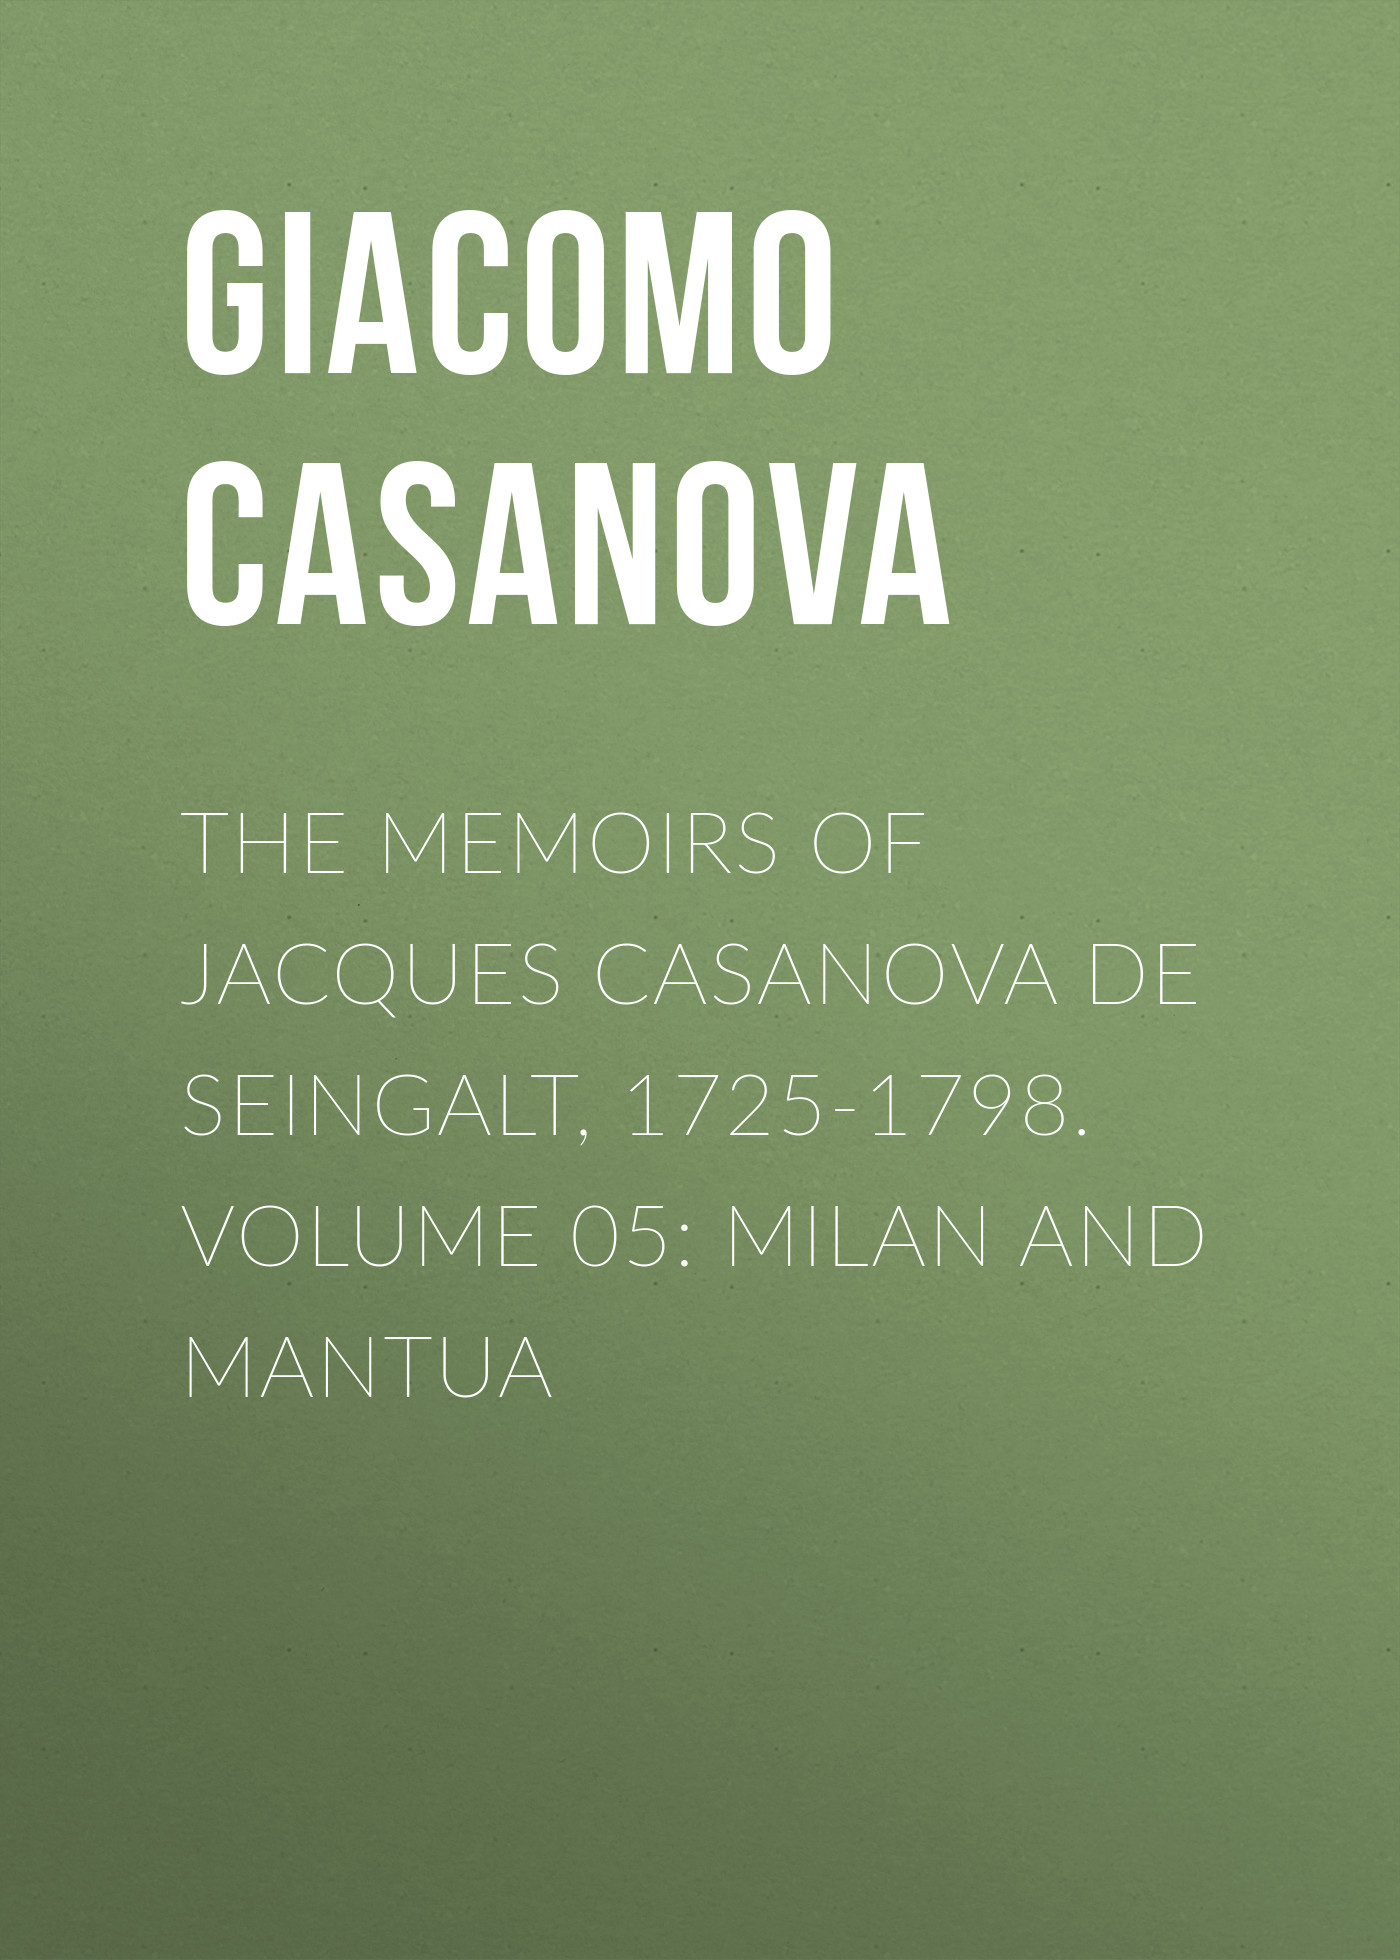 Giacomo Casanova The Memoirs of Jacques Casanova de Seingalt, 1725-1798. Volume 05: Milan and Mantua giacomo casanova the memoirs of jacques casanova de seingalt 1725 1798 volume 30 old age and death